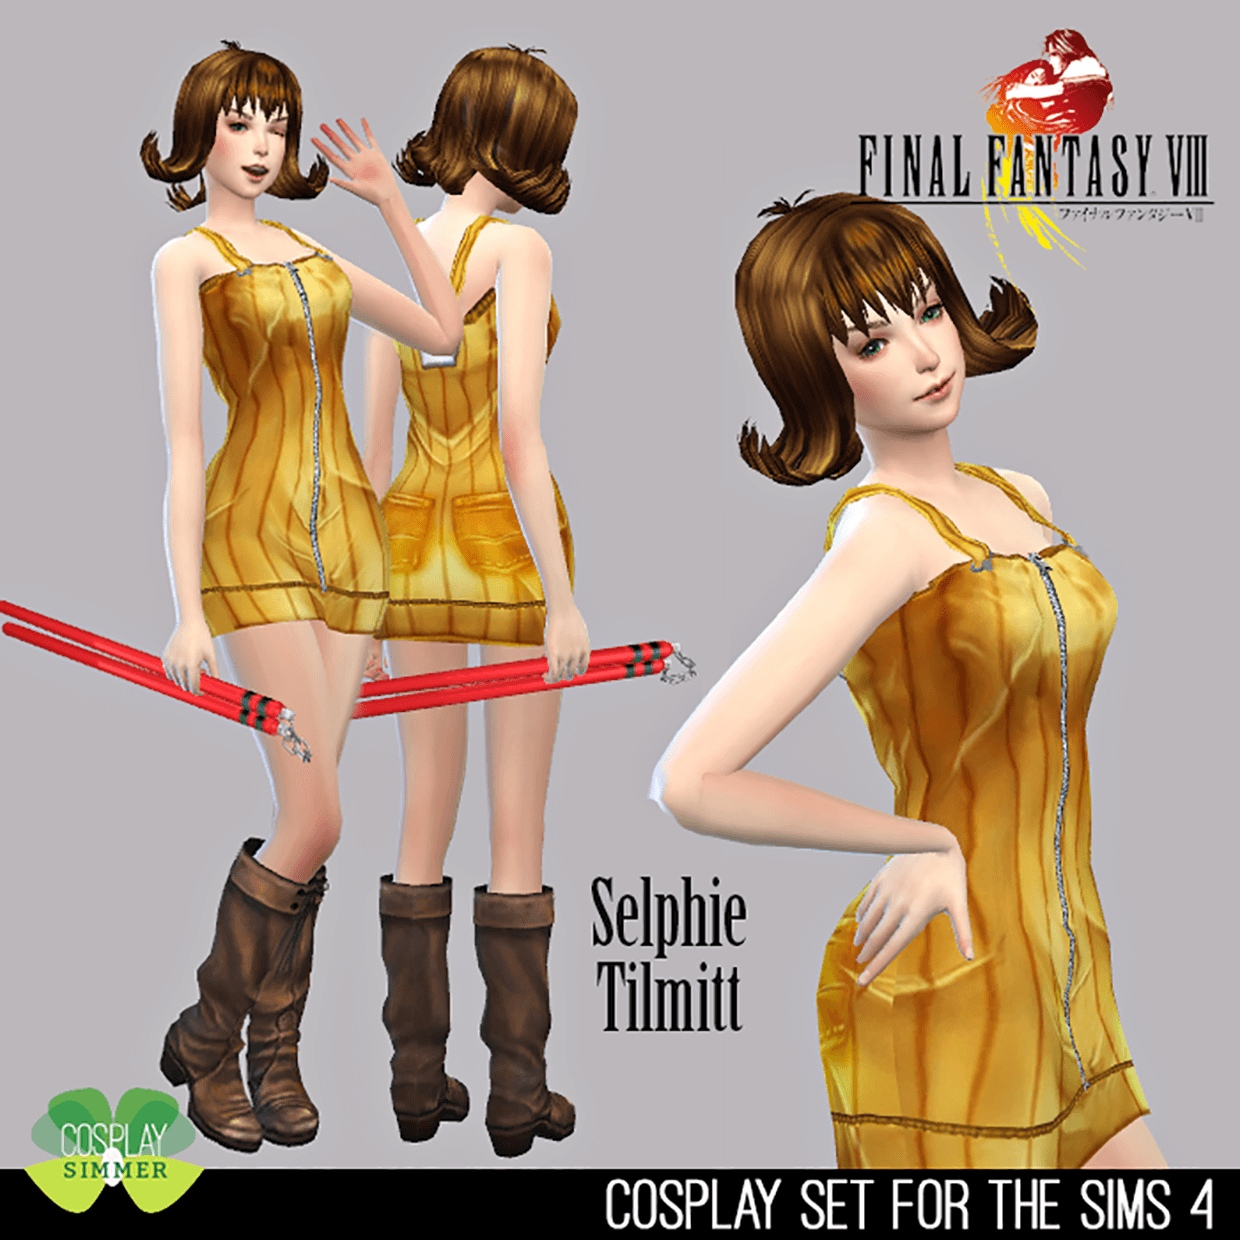 Final Fantasy VIII Selphie Tilmitt by Cosplay Simmer